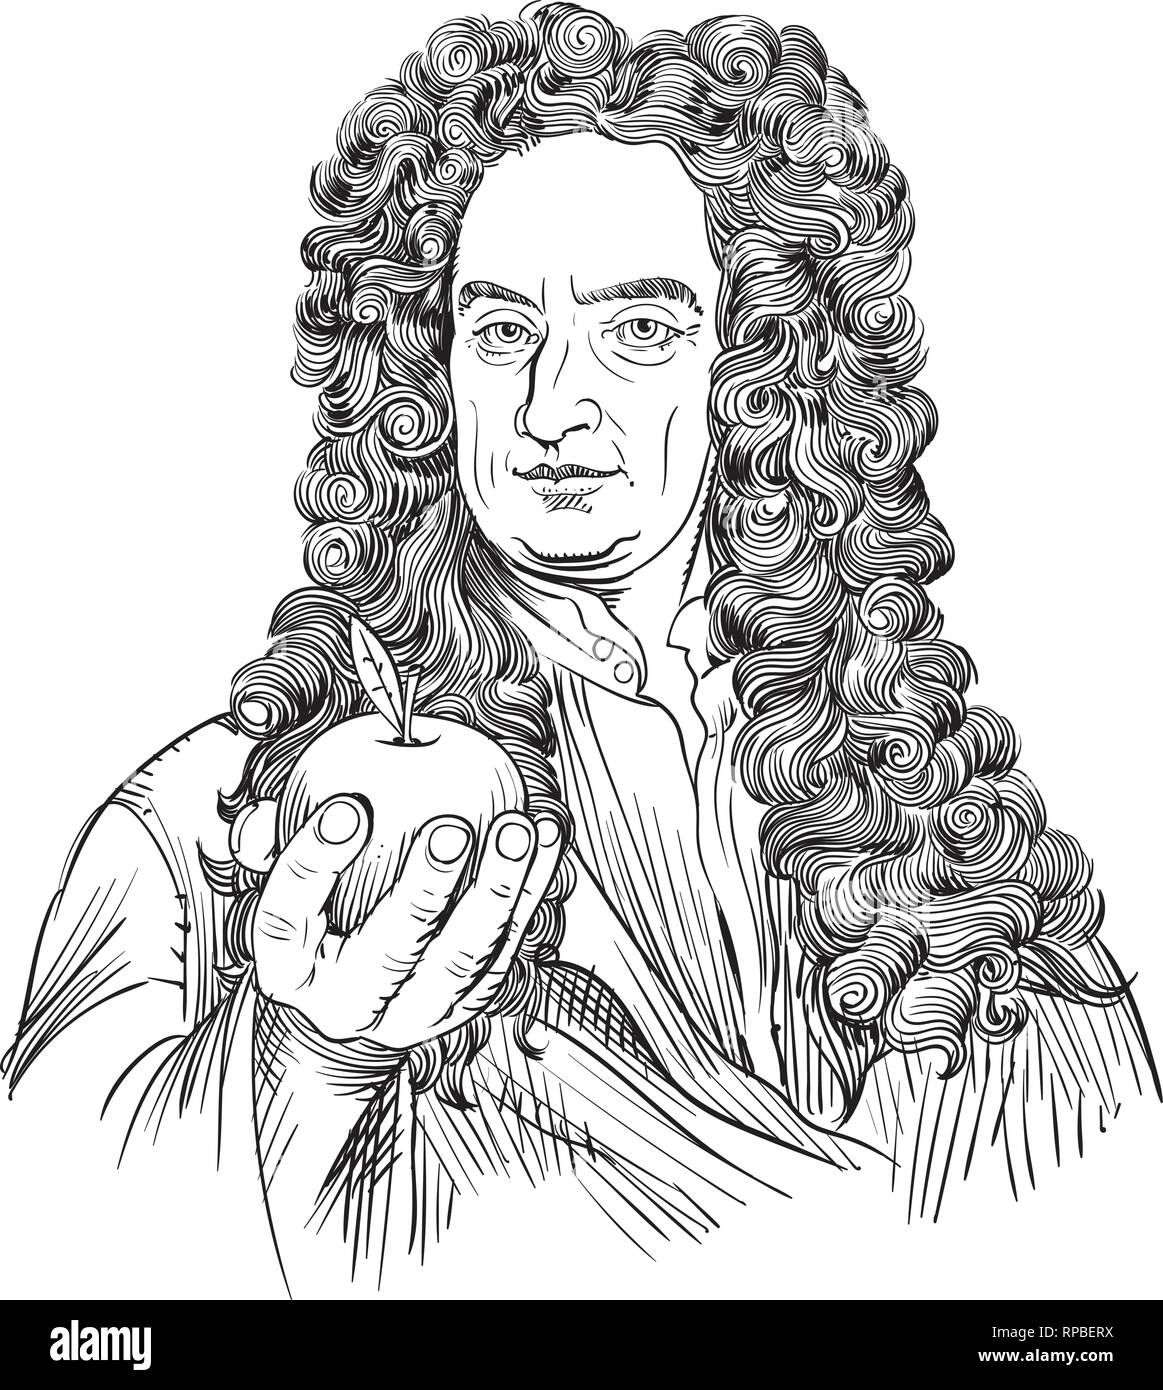 Isaac Newton portrait in line art illustration. He was an astronomer, scientist, philosopher, mathematician and physicist. - Stock Vector